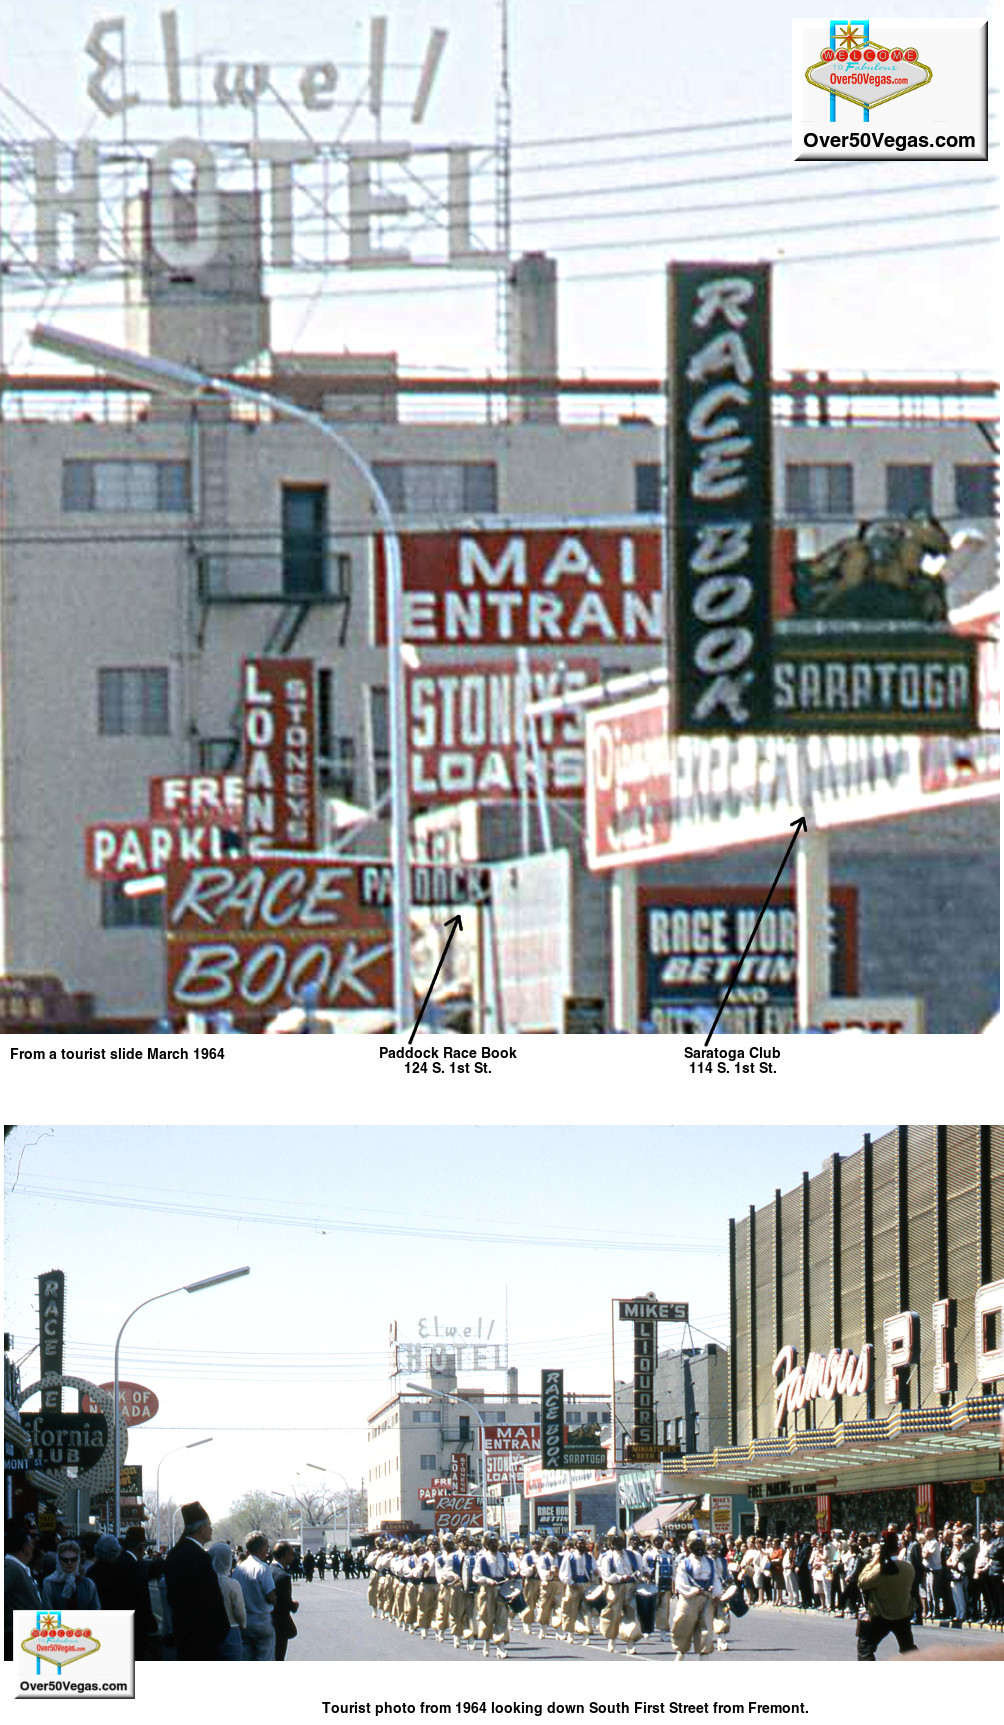 In this tourist photo from 1964 looking down South First Street from Fremont you can see the Hotel Elwell at 200 S. 1st, Mike's Liquors,  Saratoga Club at 114 S. 1st St., the Paddock Race Book at 124 S. 1st, and the South First Street entrances for the California Club and the Famous Pioneer Club.